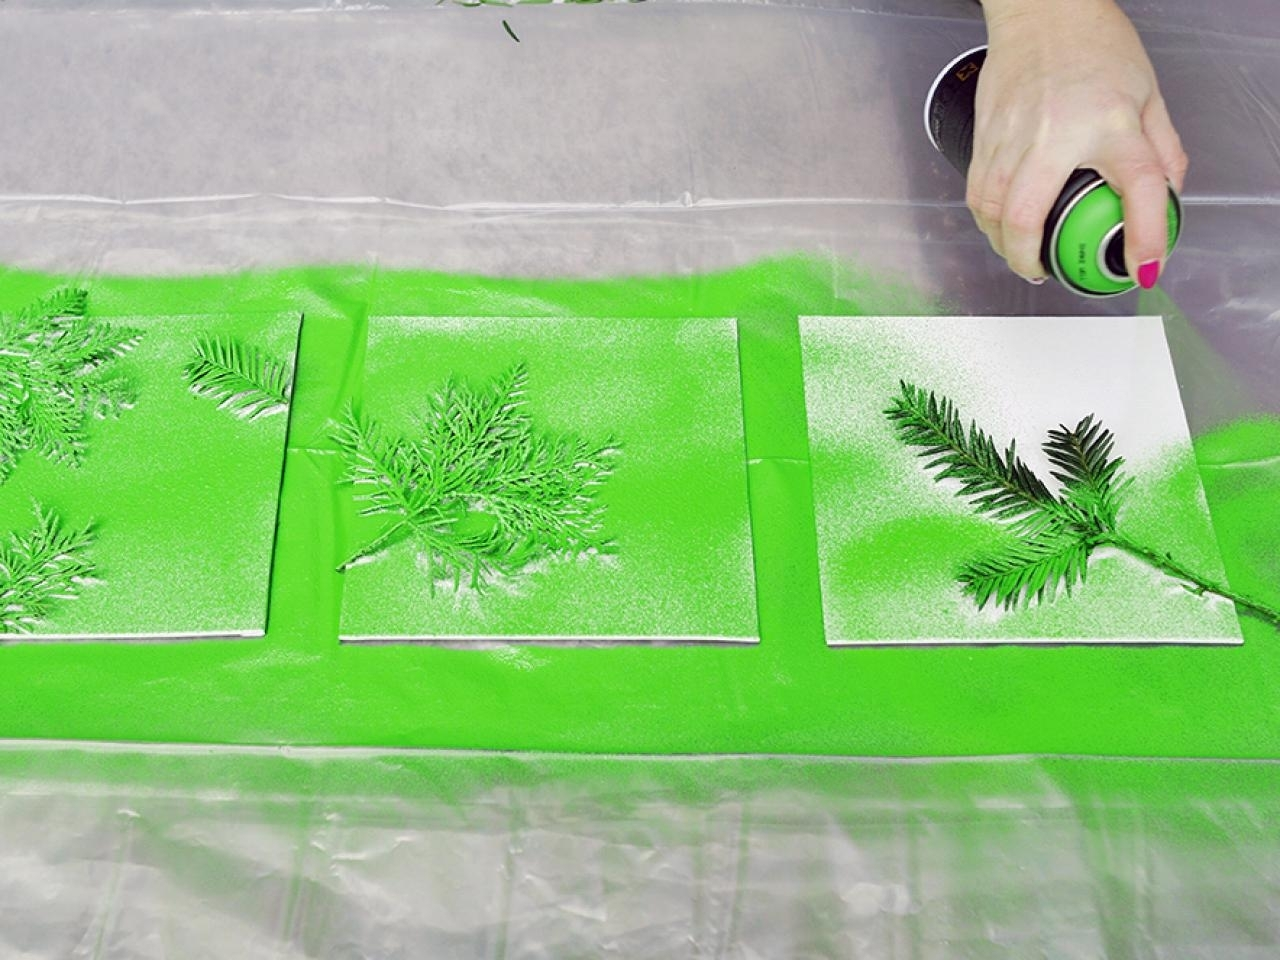 Turn Leaves And Foliage Into Diy Canvas Wall Art | Hgtv Inside Most Current Leaves Canvas Wall Art (View 5 of 15)